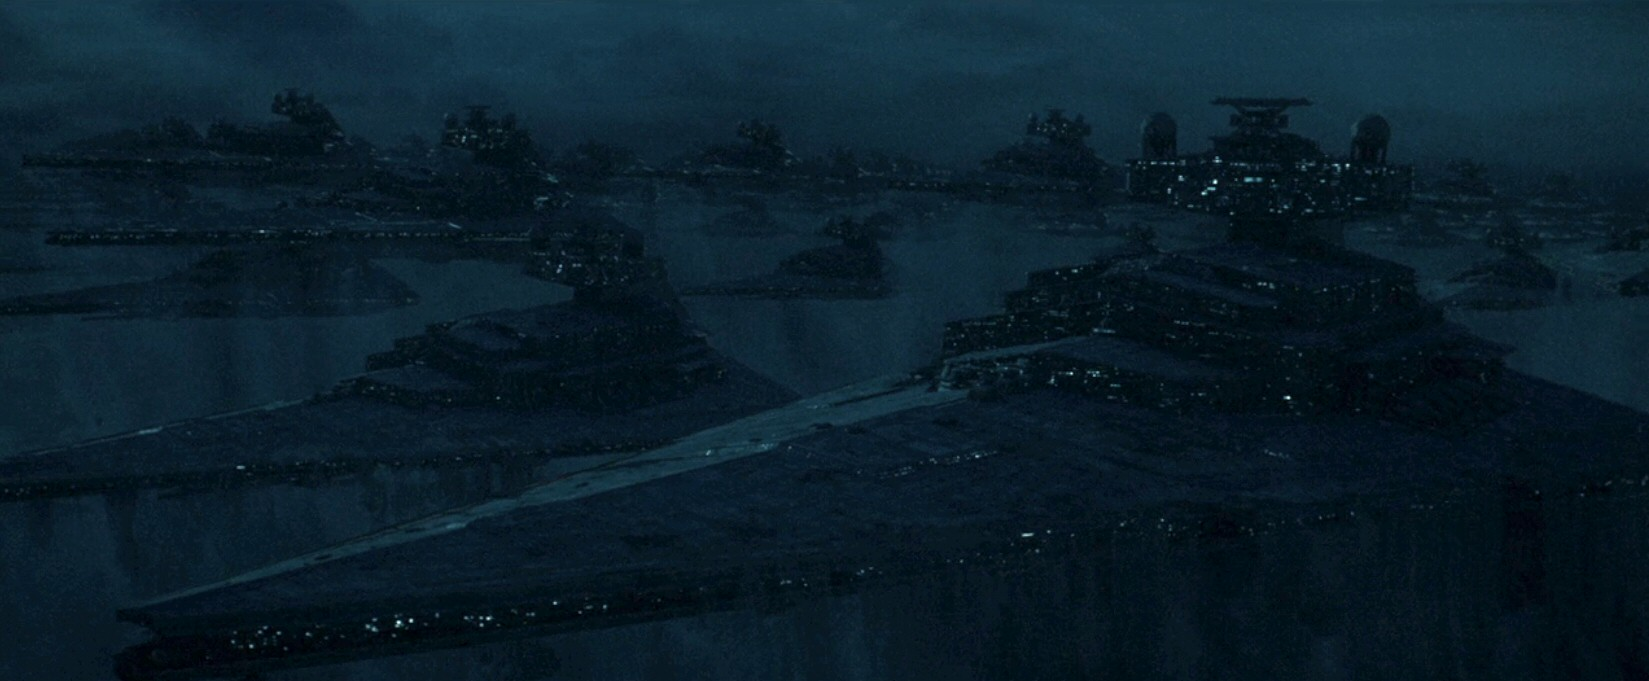 The visuals were so dark I couldn't tell if the SURPRISE FLEET was buried in dirt or ice. Either way, this is a very unconventional way of storing a fleet. (Not to mention the hundreds of thousands of otherwise normal people to operate it.)